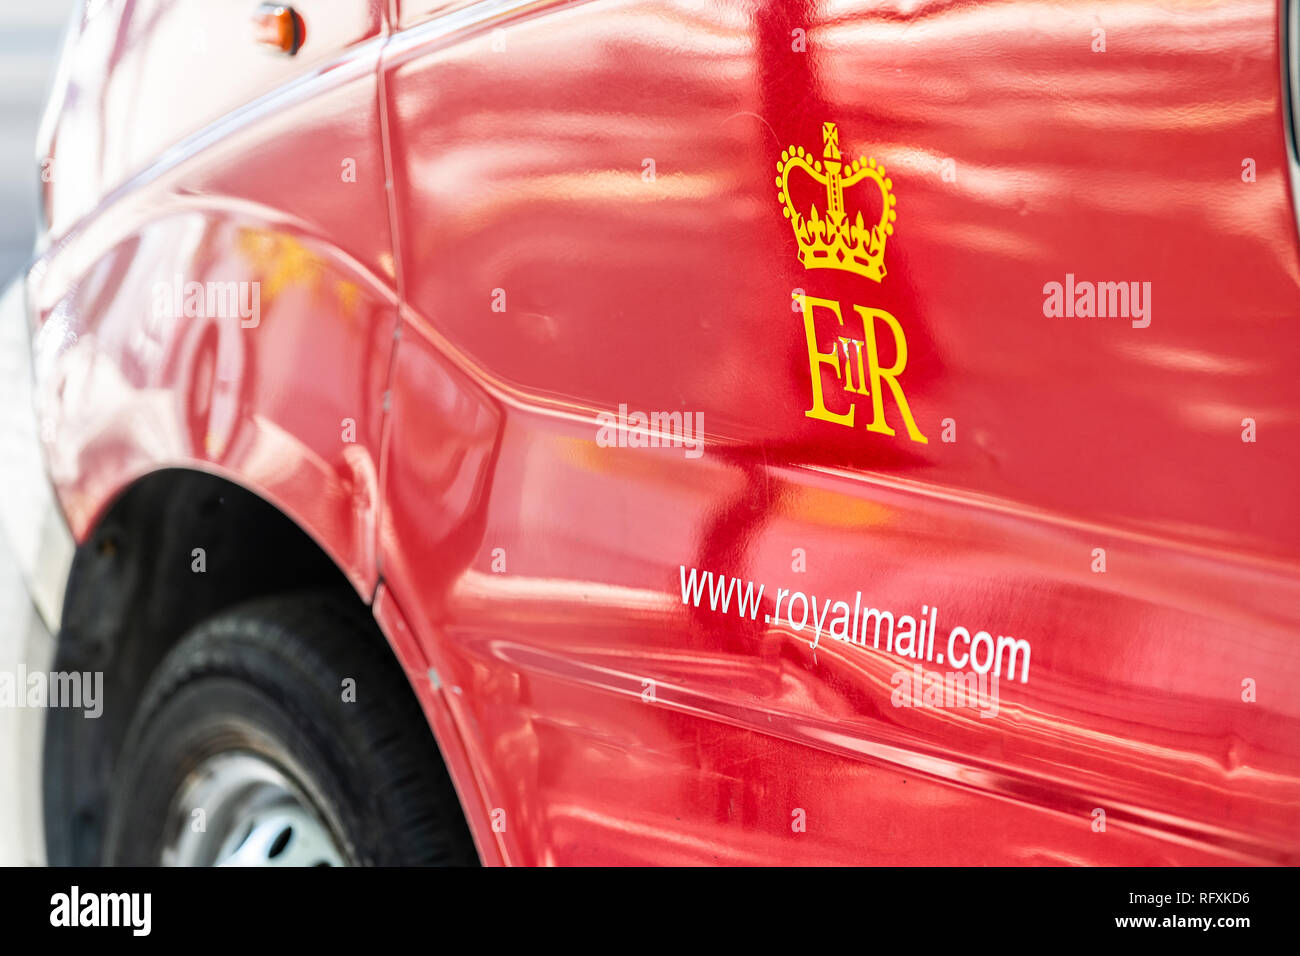 London, UK - September 13, 2018: Closeup of red Royal Mail delivery van truck car on street road in city with crown logo - Stock Image